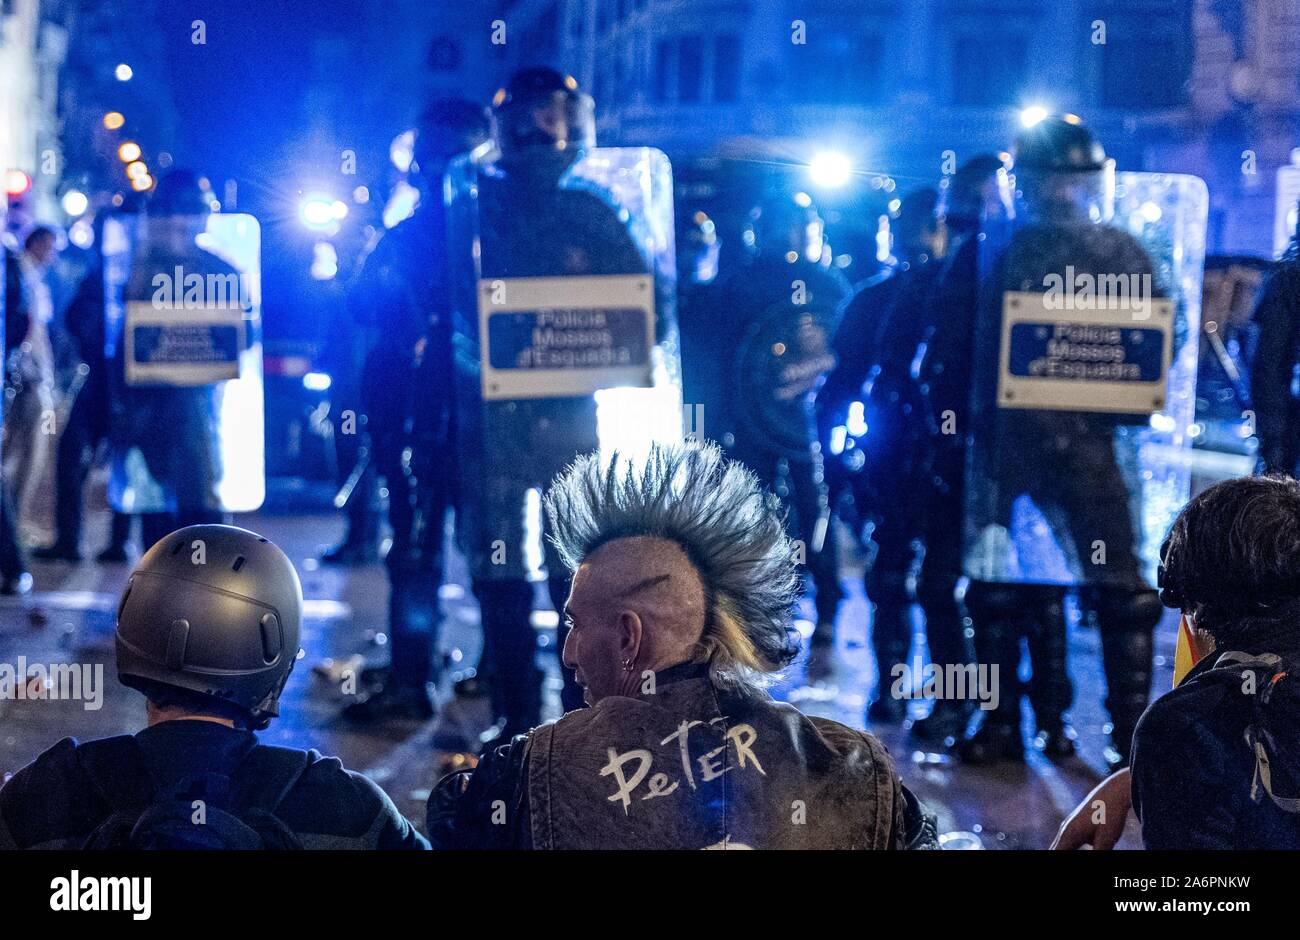 Barcelona, Spain. 26th Oct, 2019. Catalan pro-independence demonstrators rally near the headquarters of the Spanish National Police force in Barcelona, Spain, on Oct. 26, 2019. Credit: Joan Gosa/Xinhua/Alamy Live News Stock Photo